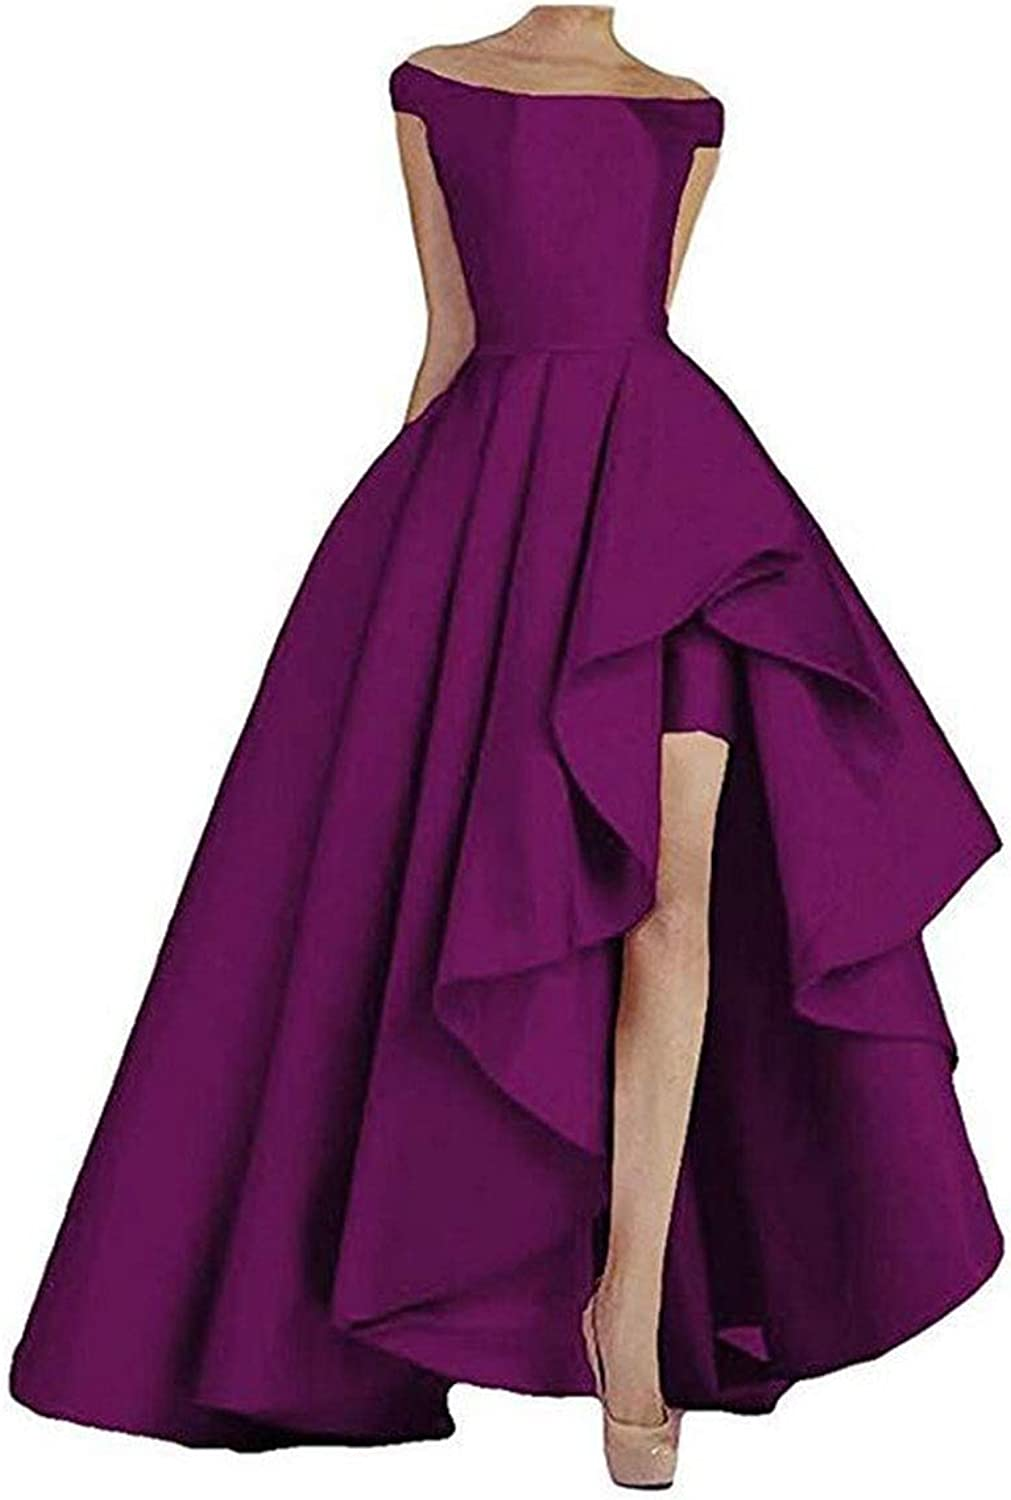 Tsbridal Women's Long Off Shoulder Bridesmaid Dresses High Low Prom Dresses Lace Up Evening Party Formal Gowns